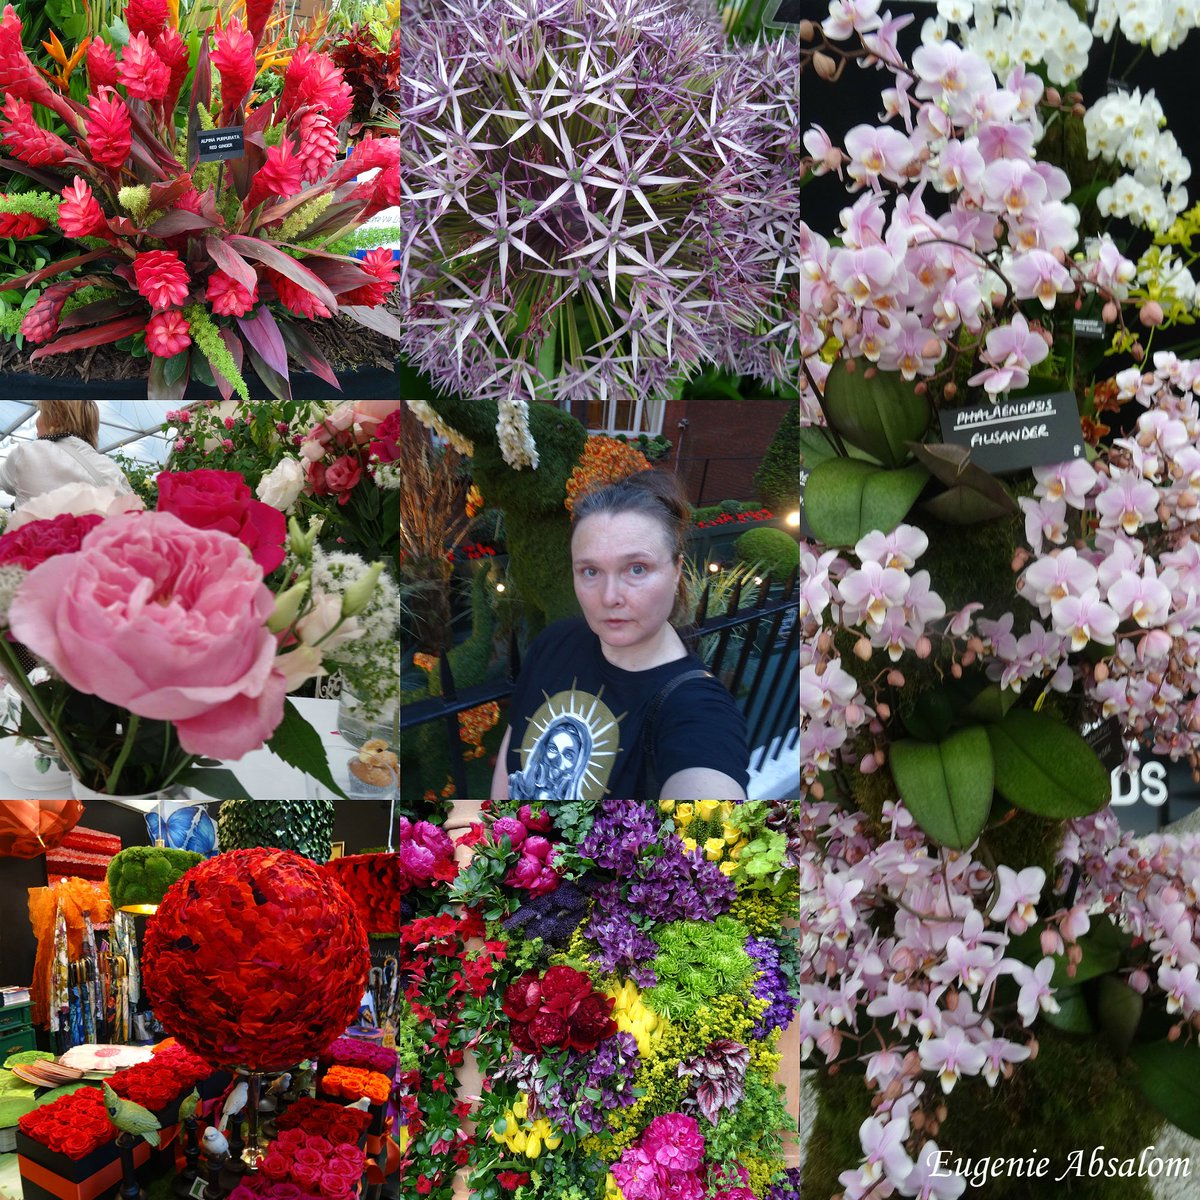 Eugenie Absalom On Twitter Selfies With Beautiful Flowers From